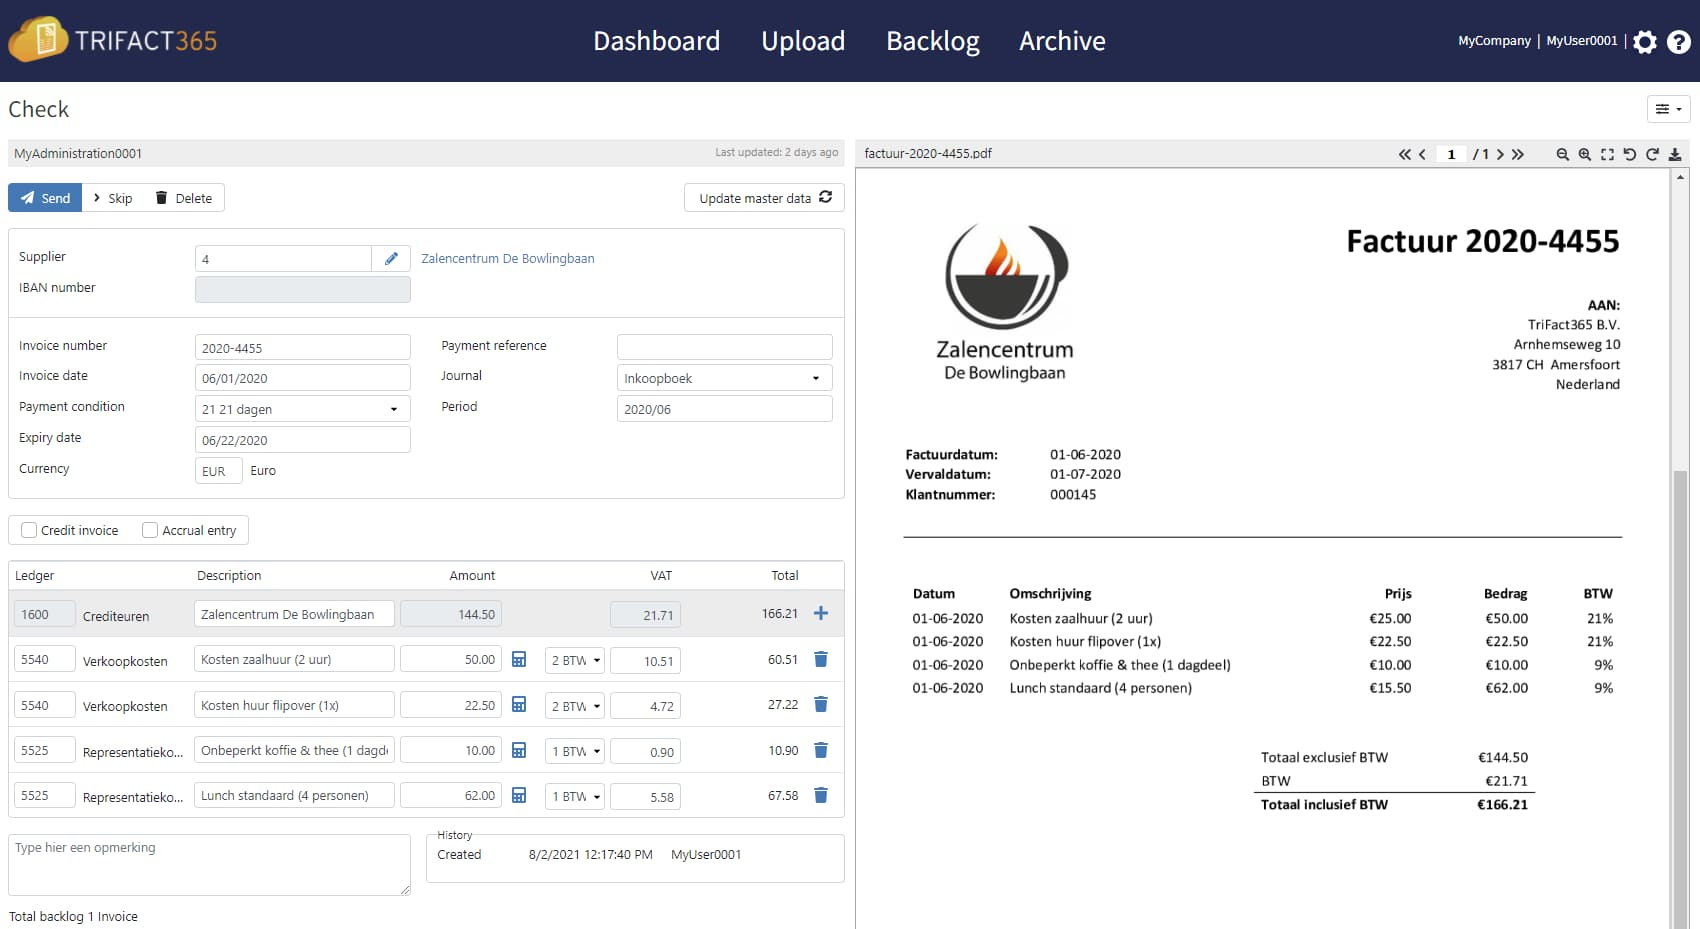 TriFact365 English invoice scanning software with an invoice validation.